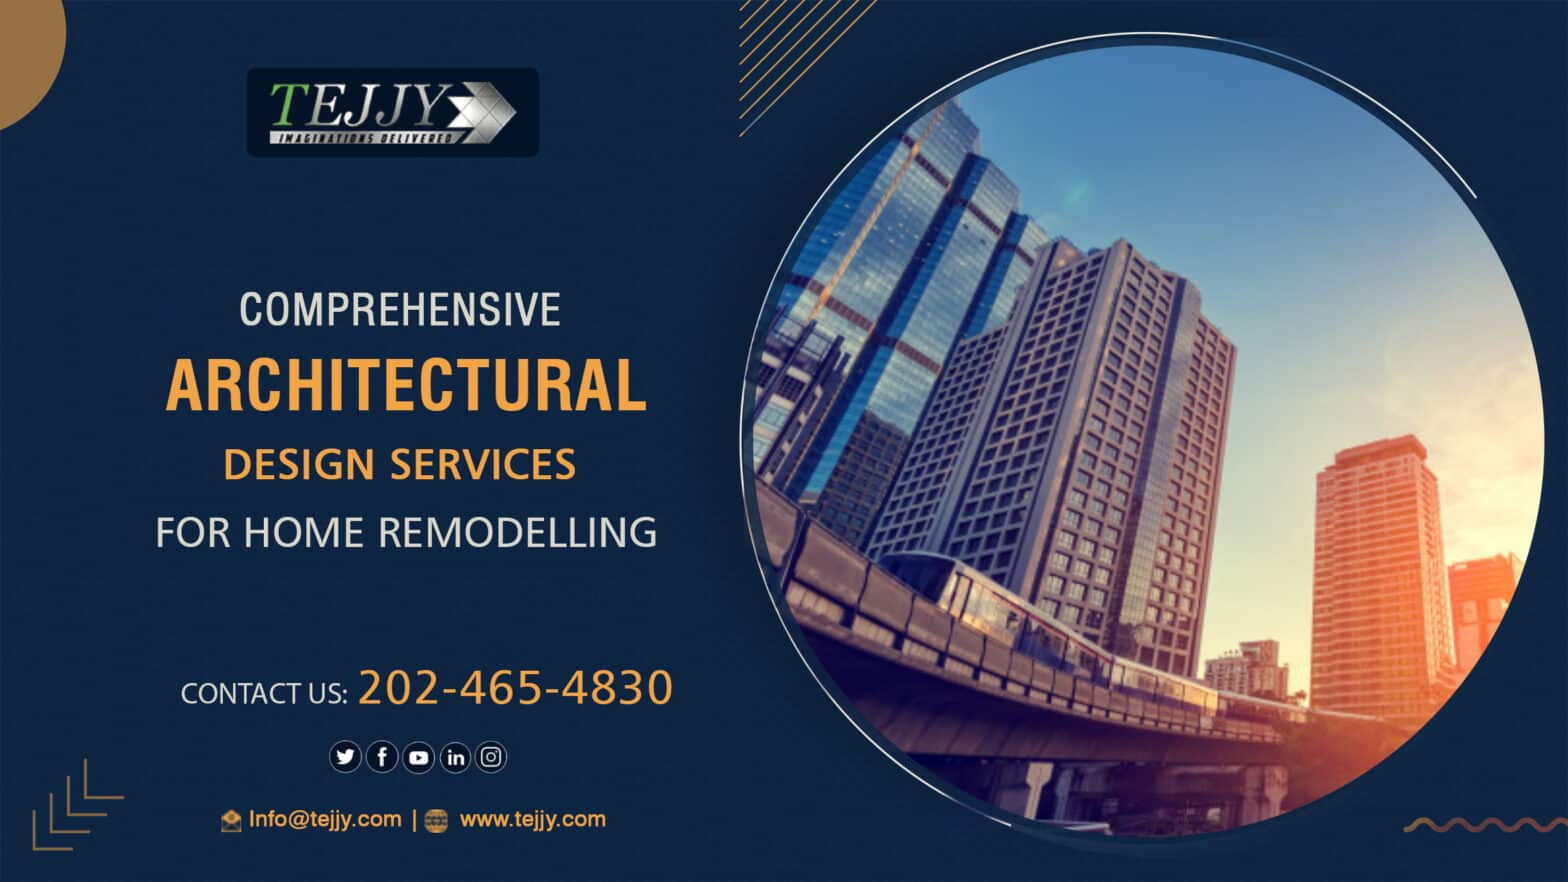 Architectural Design Services for Home Remodeling